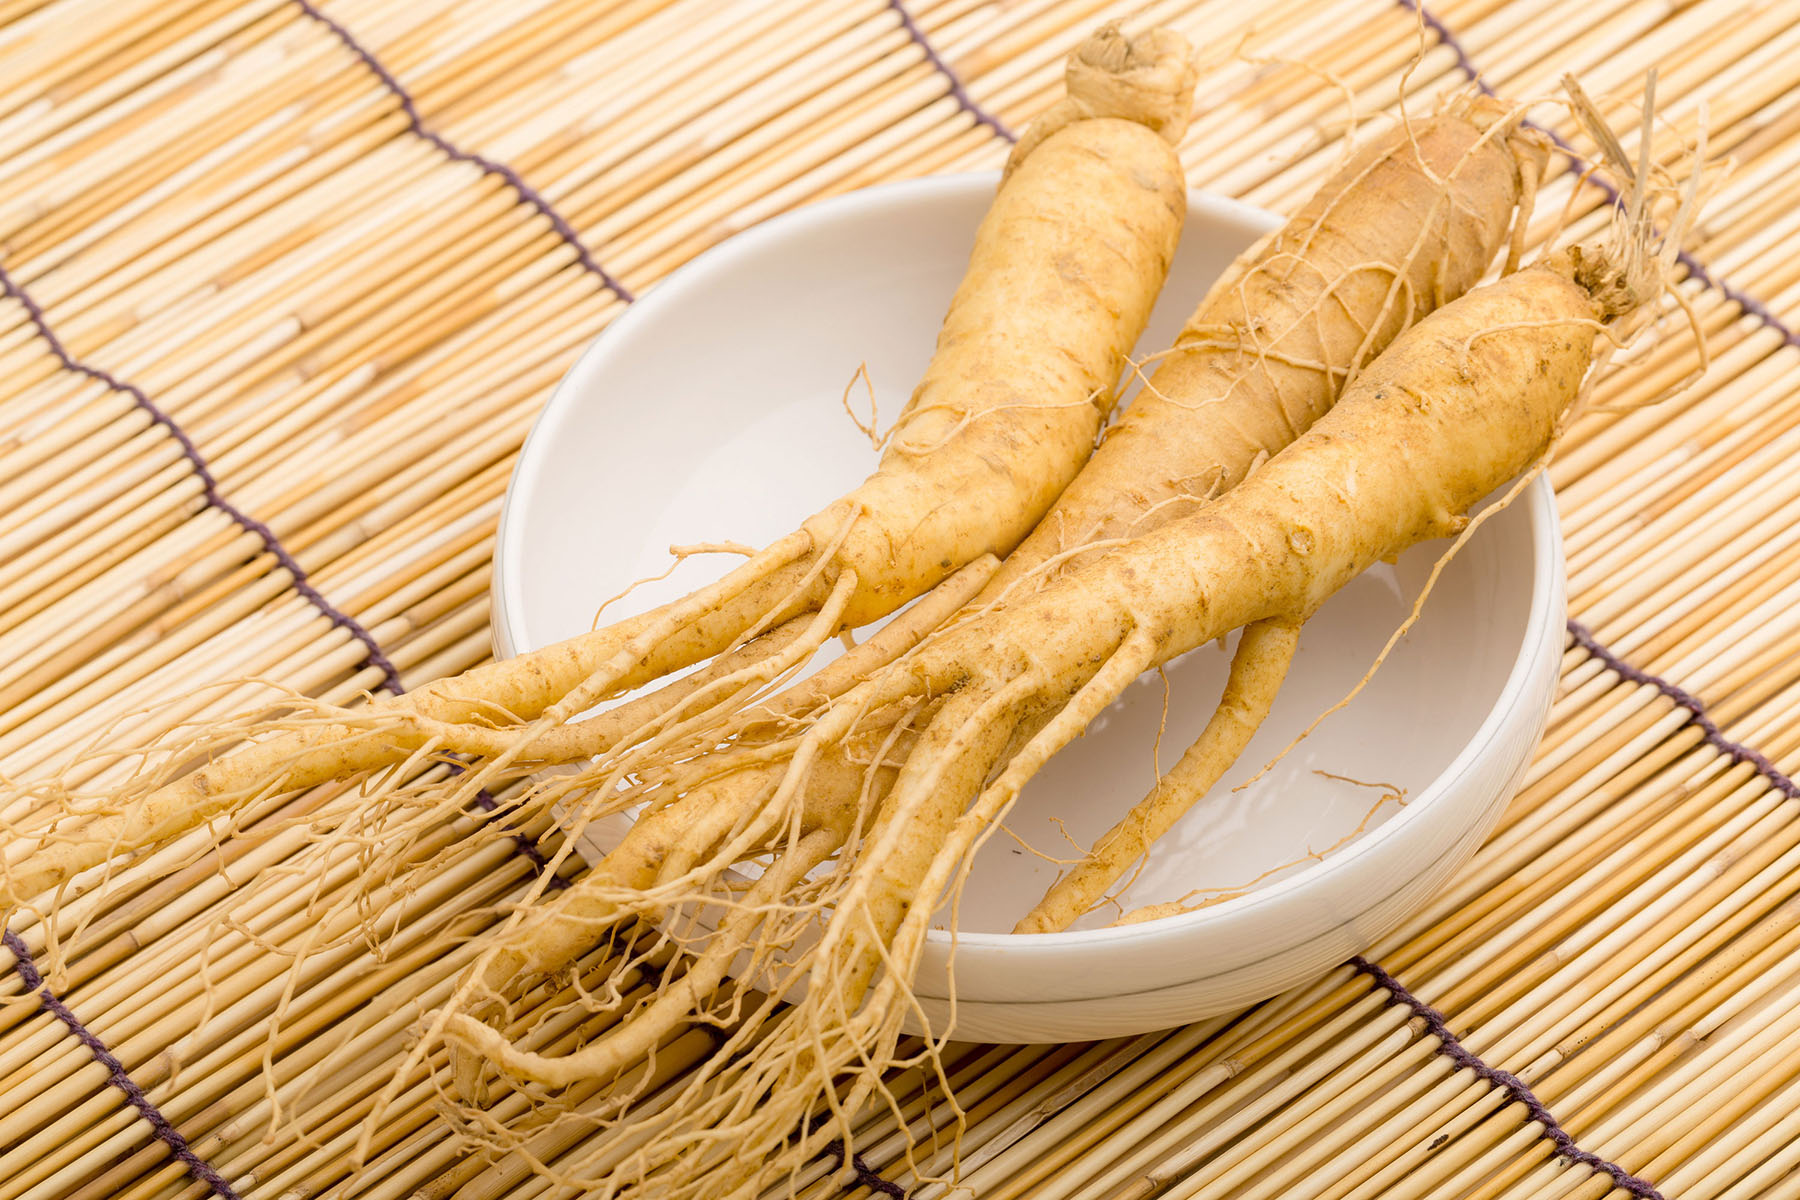 Ginseng photo by Rainey Ginseng